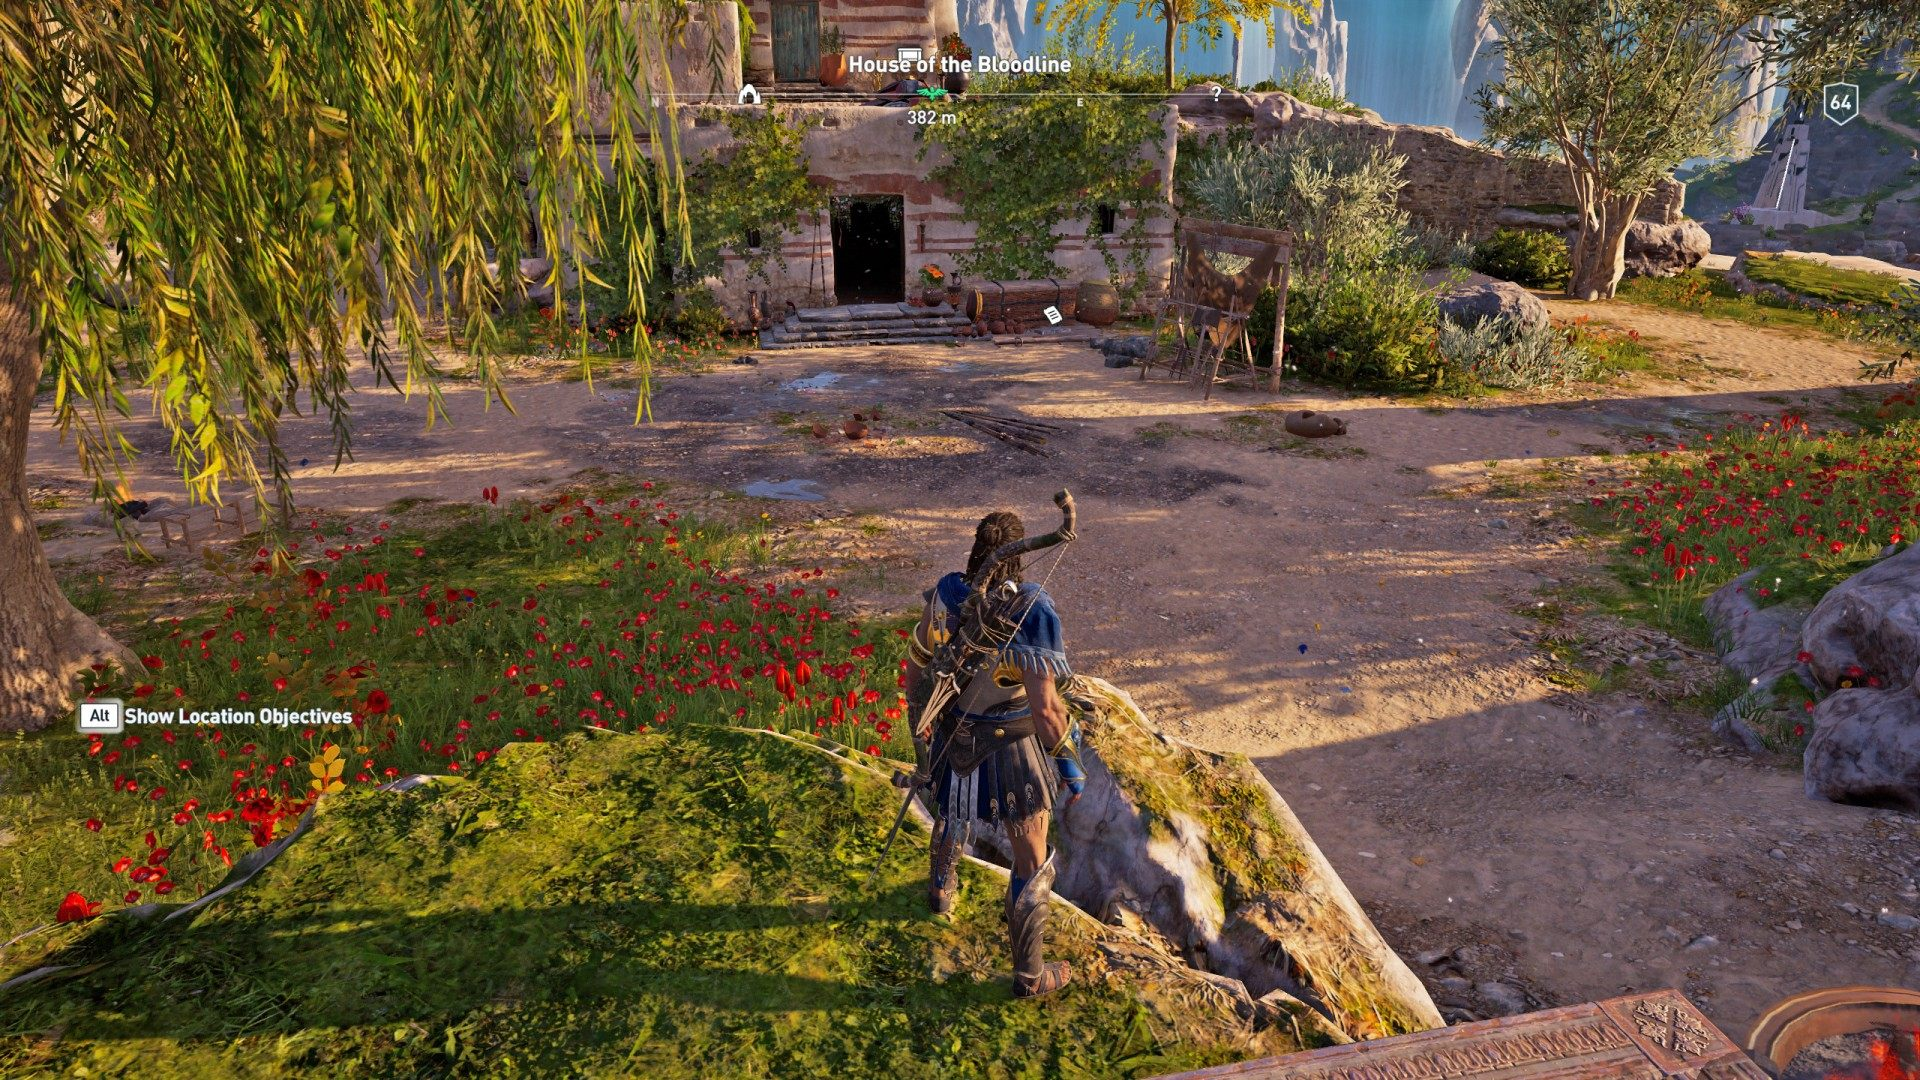 Ainigmata Ostraka Riddles, Elysium, Assassin's Creed Odyssey Points